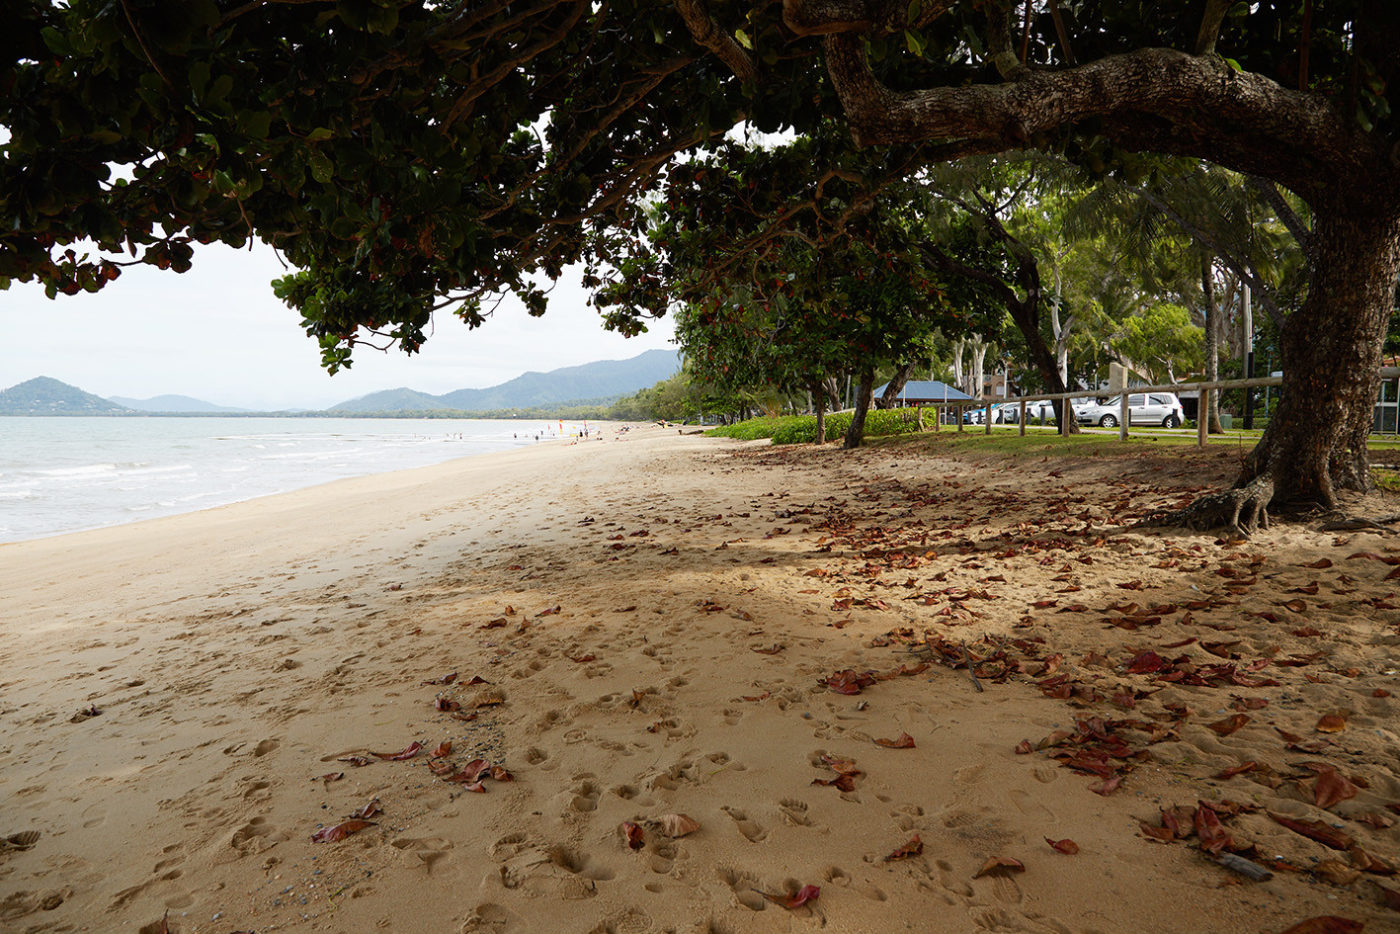 Palm Cove, Cairns, Australien, Roadtrip, Miles and Shores, Reiseblog, Reiseblogger, Strand, beach, Palmen, Paradies